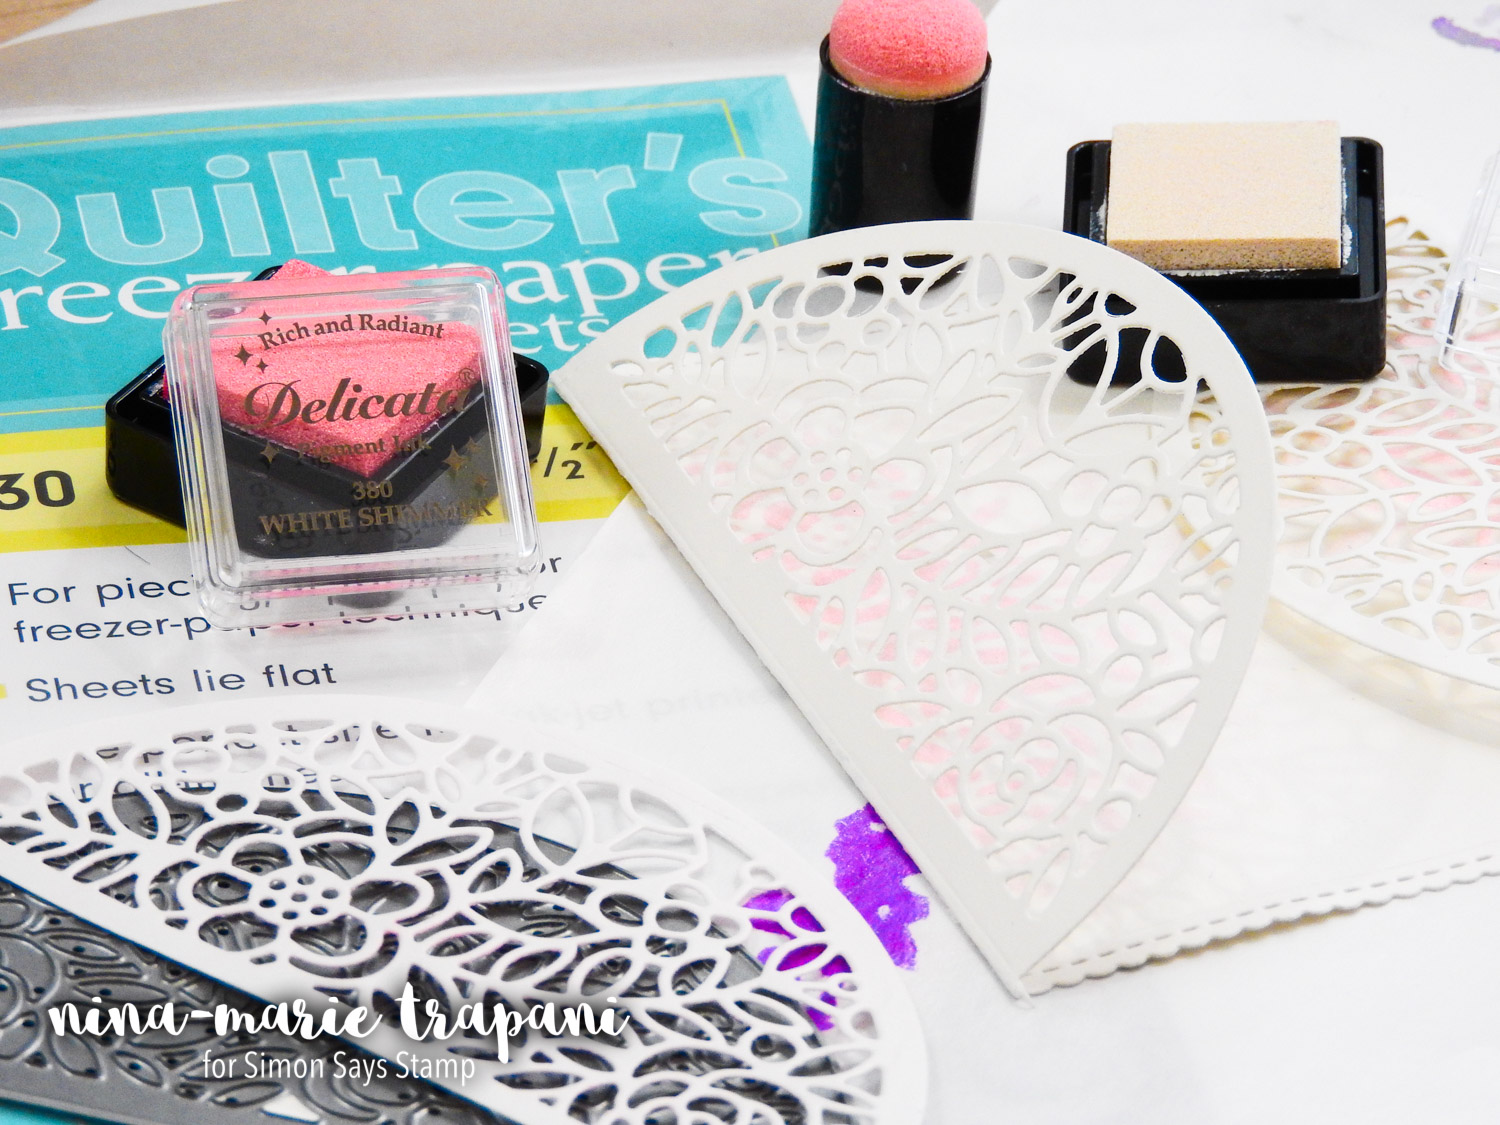 Studio Monday with Nina-Marie: 5 Ways to Use Freezer Paper